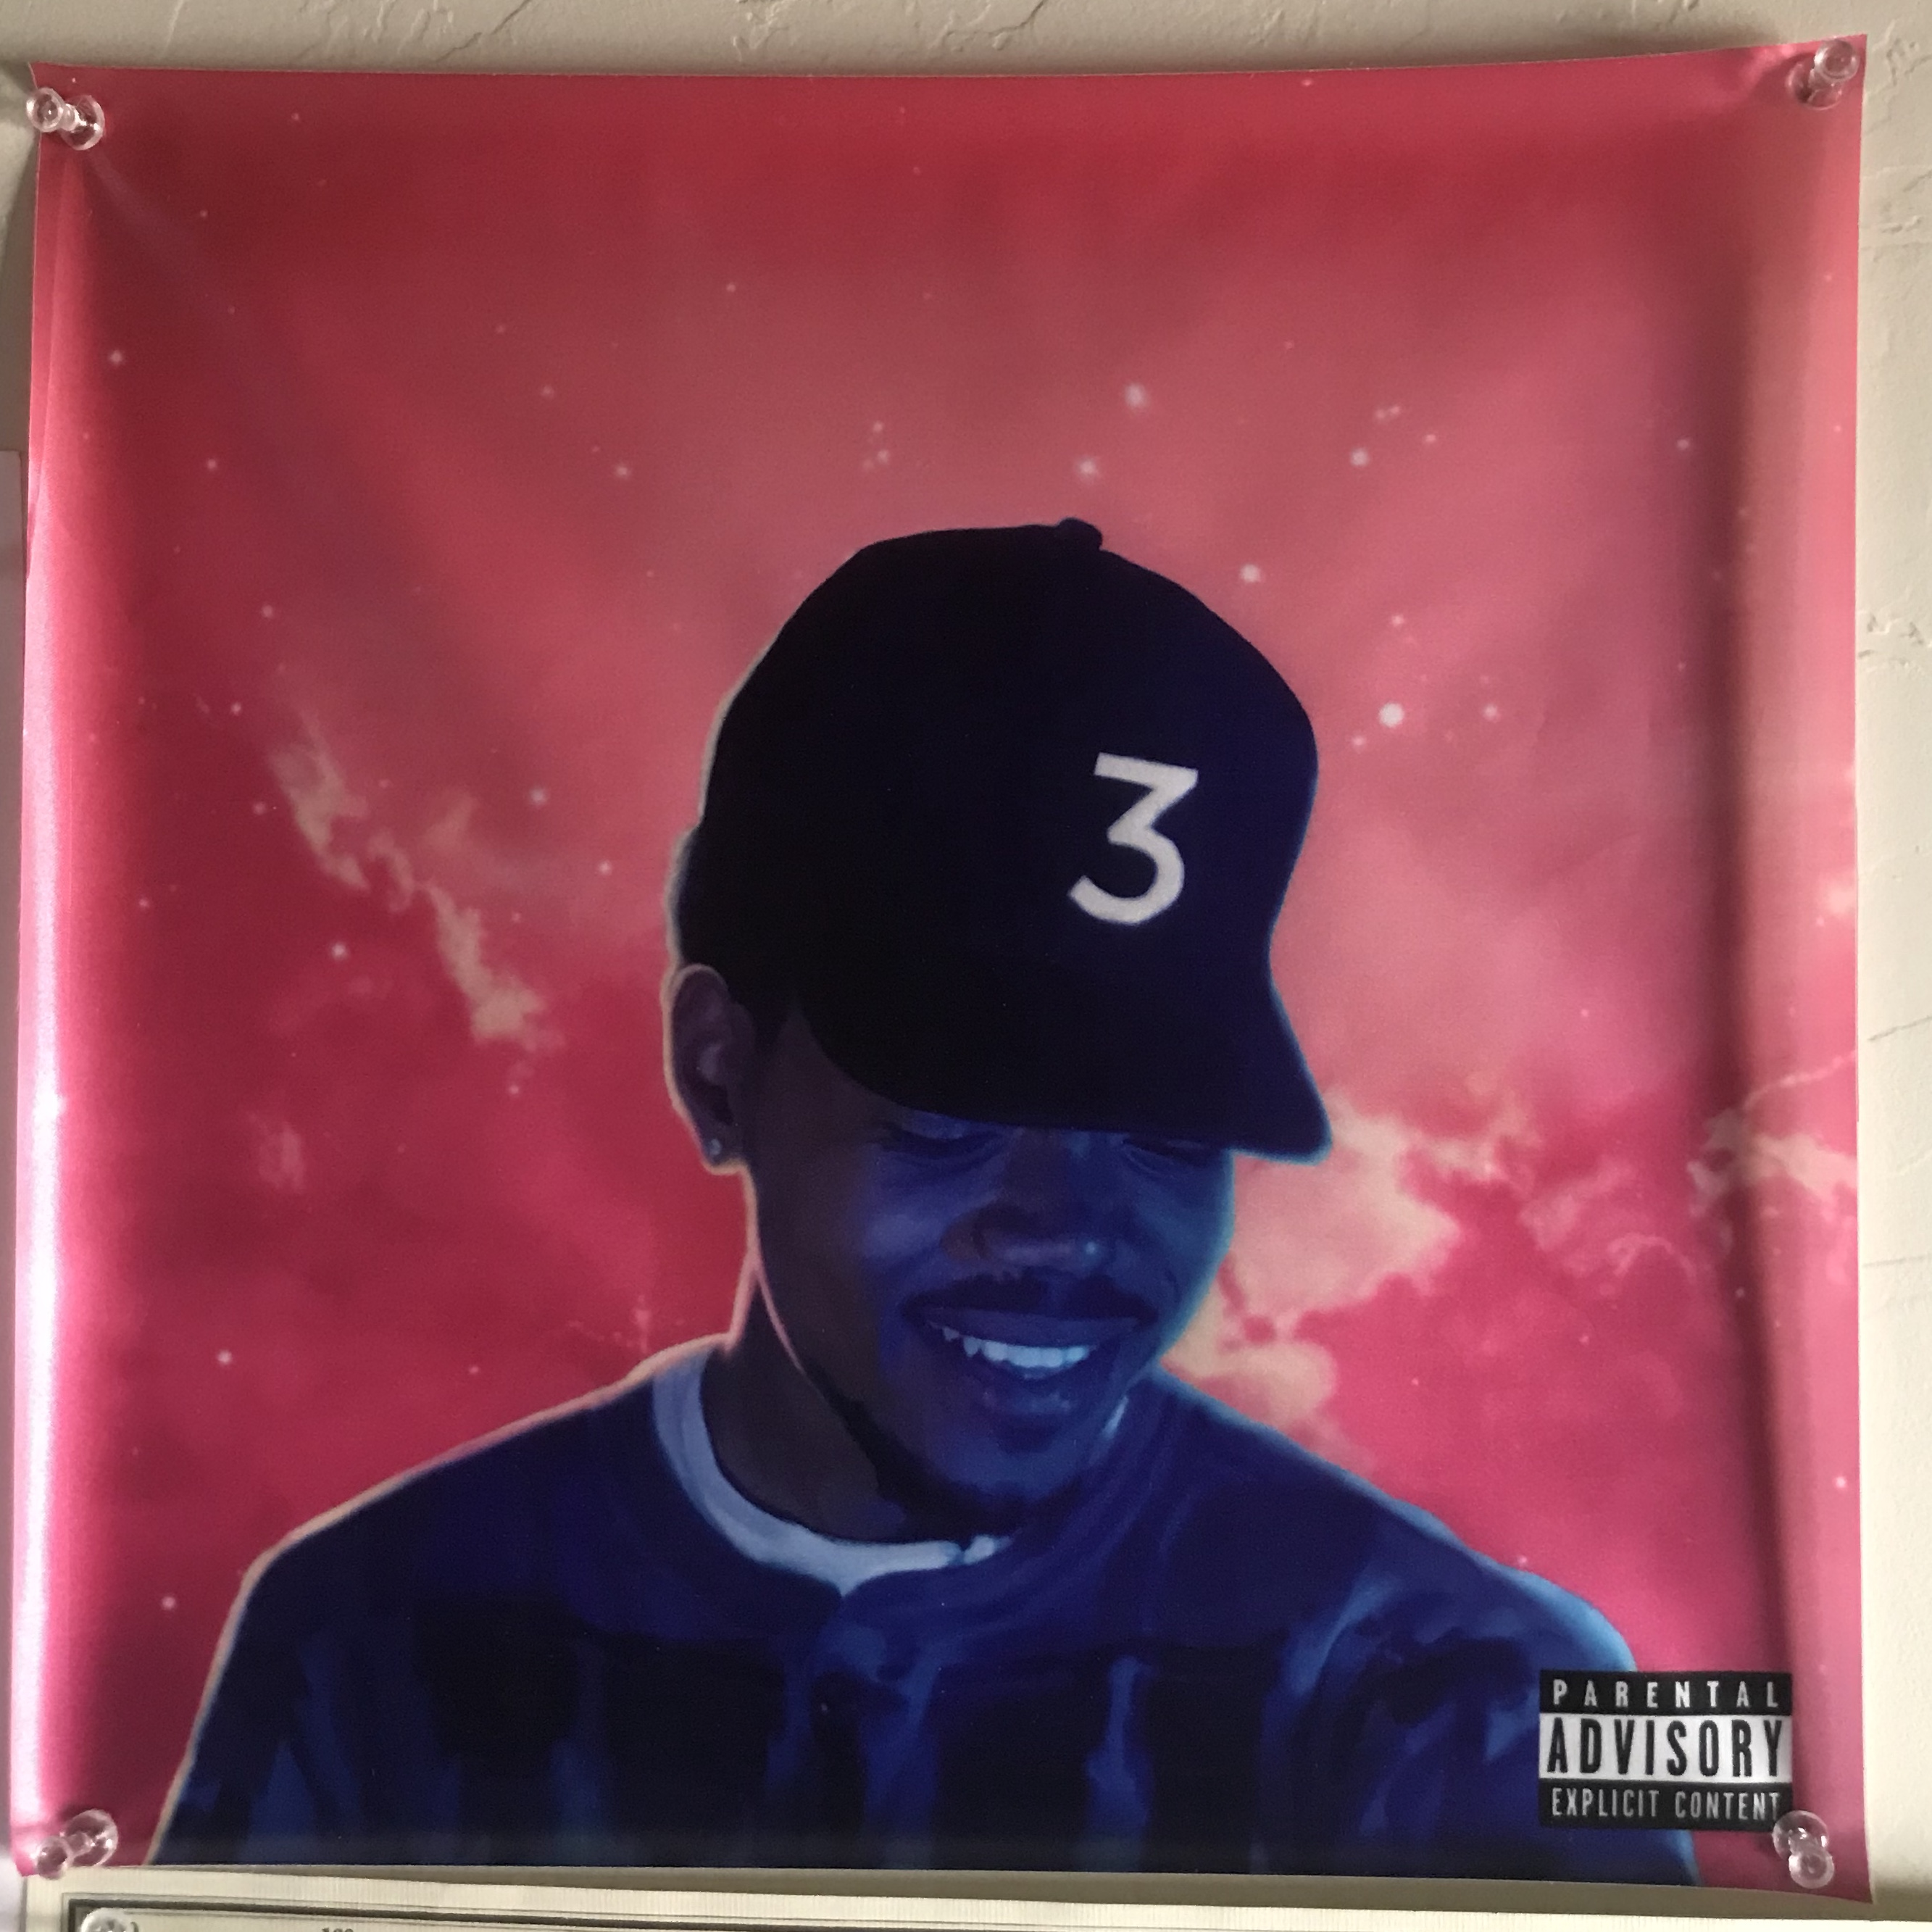 Chance The Rapper Coloring Book Album Cover Poster  Chance The Rapper poster  merch   album print  music poster  custom poster